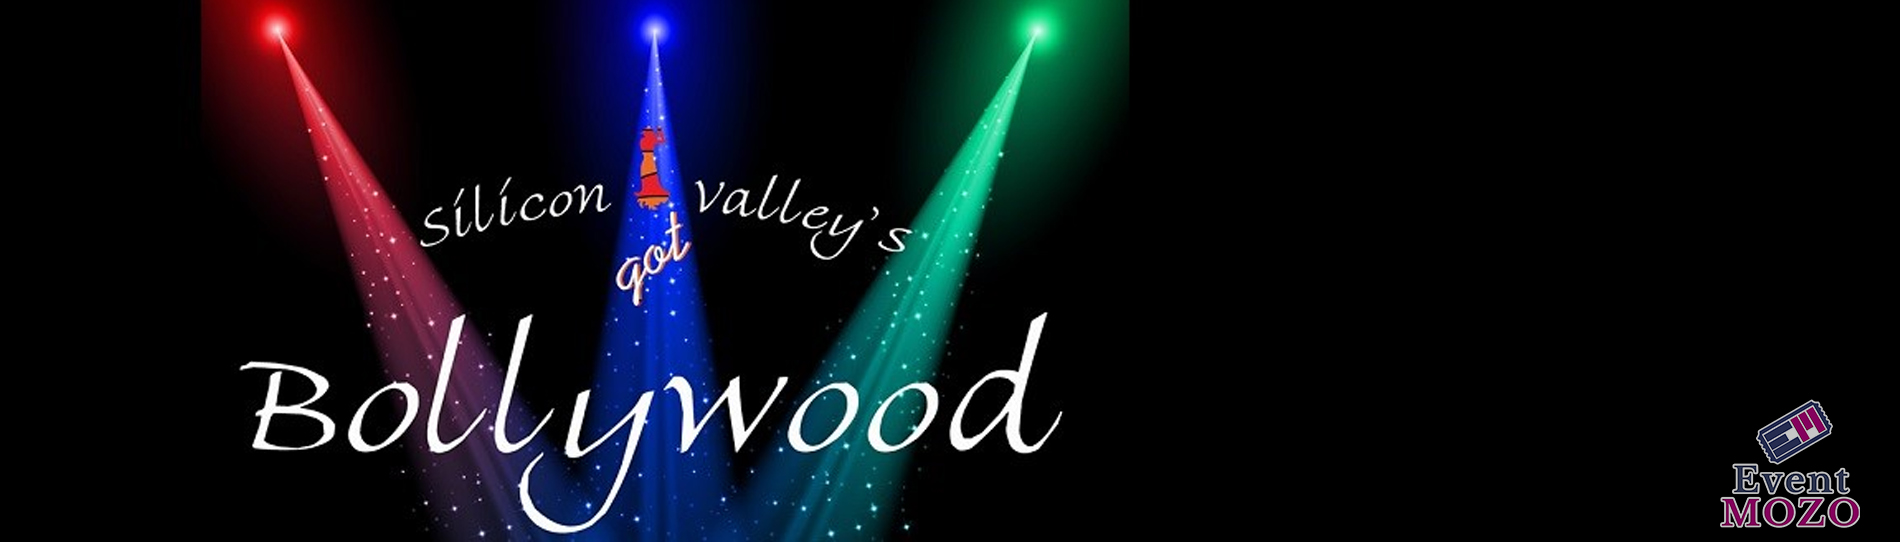 EventMozo Silicon Valley's got Bollywood Annual Competition 2019